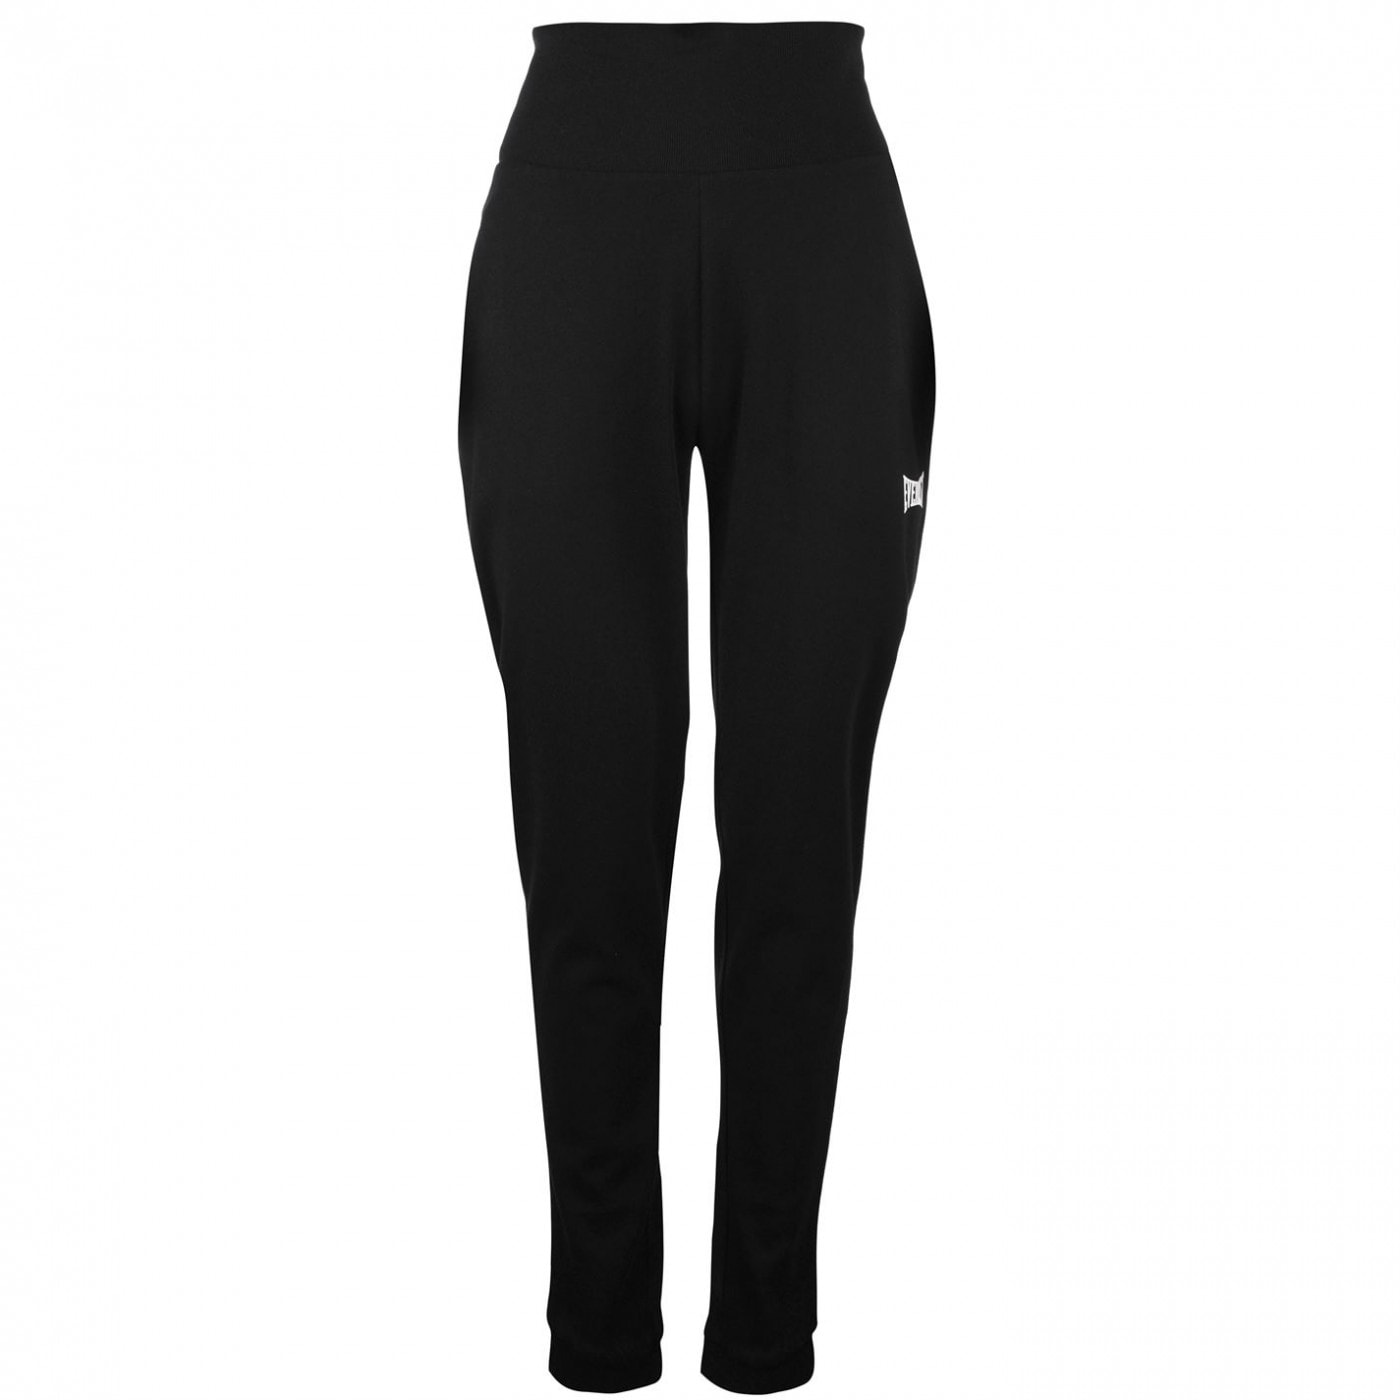 Everlast Jogging Bottoms Ladies